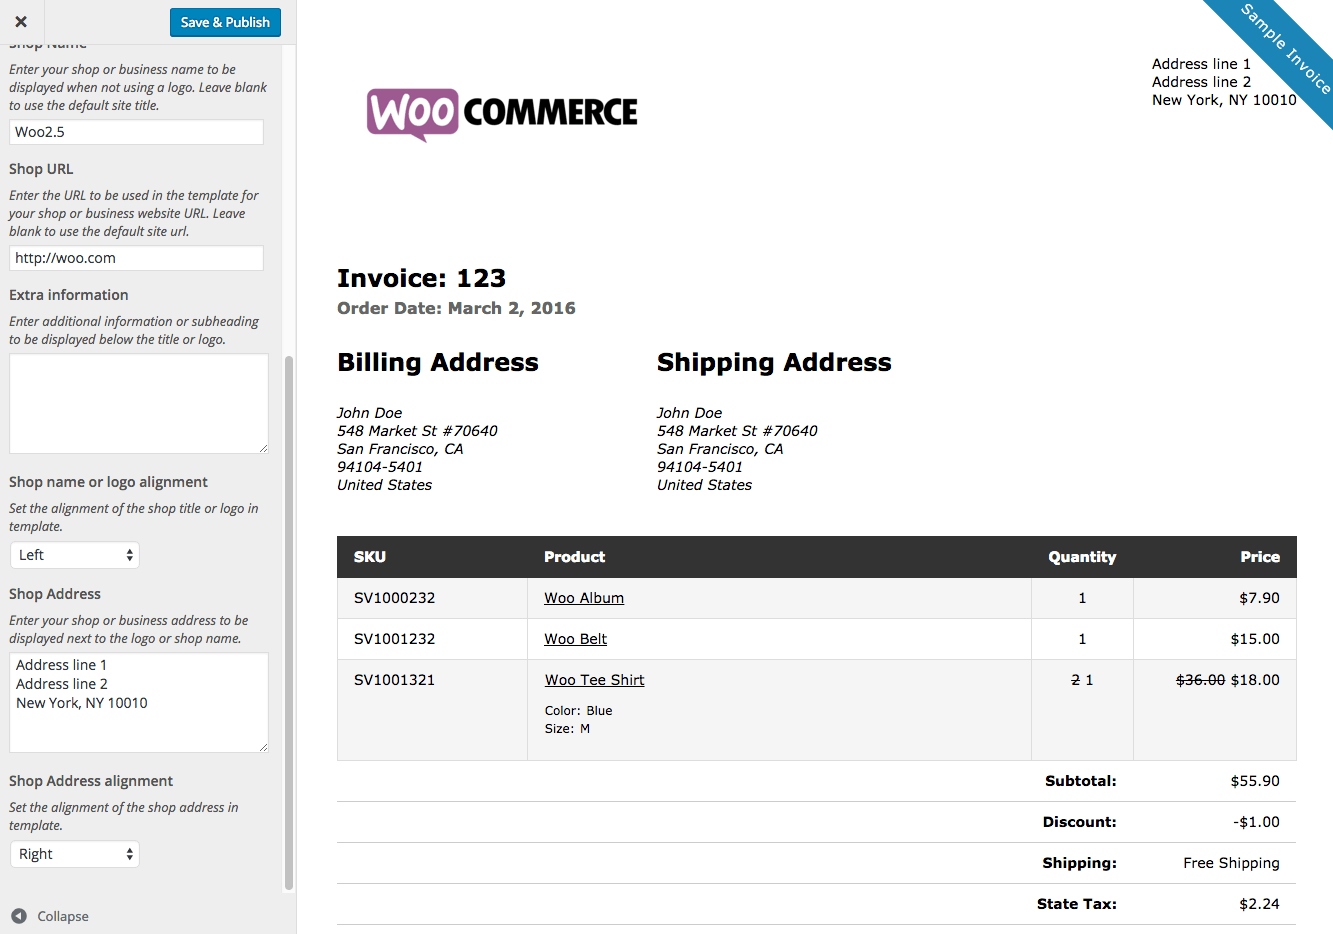 Ediblewildsus  Personable Woocommerce Print Invoices Amp Packing Lists  Woocommerce Docs With Glamorous Woocommerce Print Invoices  Packing Lists Customizer With Lovely What Is Invoice Price Also Create Invoice Online In Addition Free Invoice Creator And Hvac Invoices As Well As Final Invoice Additionally Generic Invoice From Docswoocommercecom With Ediblewildsus  Glamorous Woocommerce Print Invoices Amp Packing Lists  Woocommerce Docs With Lovely Woocommerce Print Invoices  Packing Lists Customizer And Personable What Is Invoice Price Also Create Invoice Online In Addition Free Invoice Creator From Docswoocommercecom